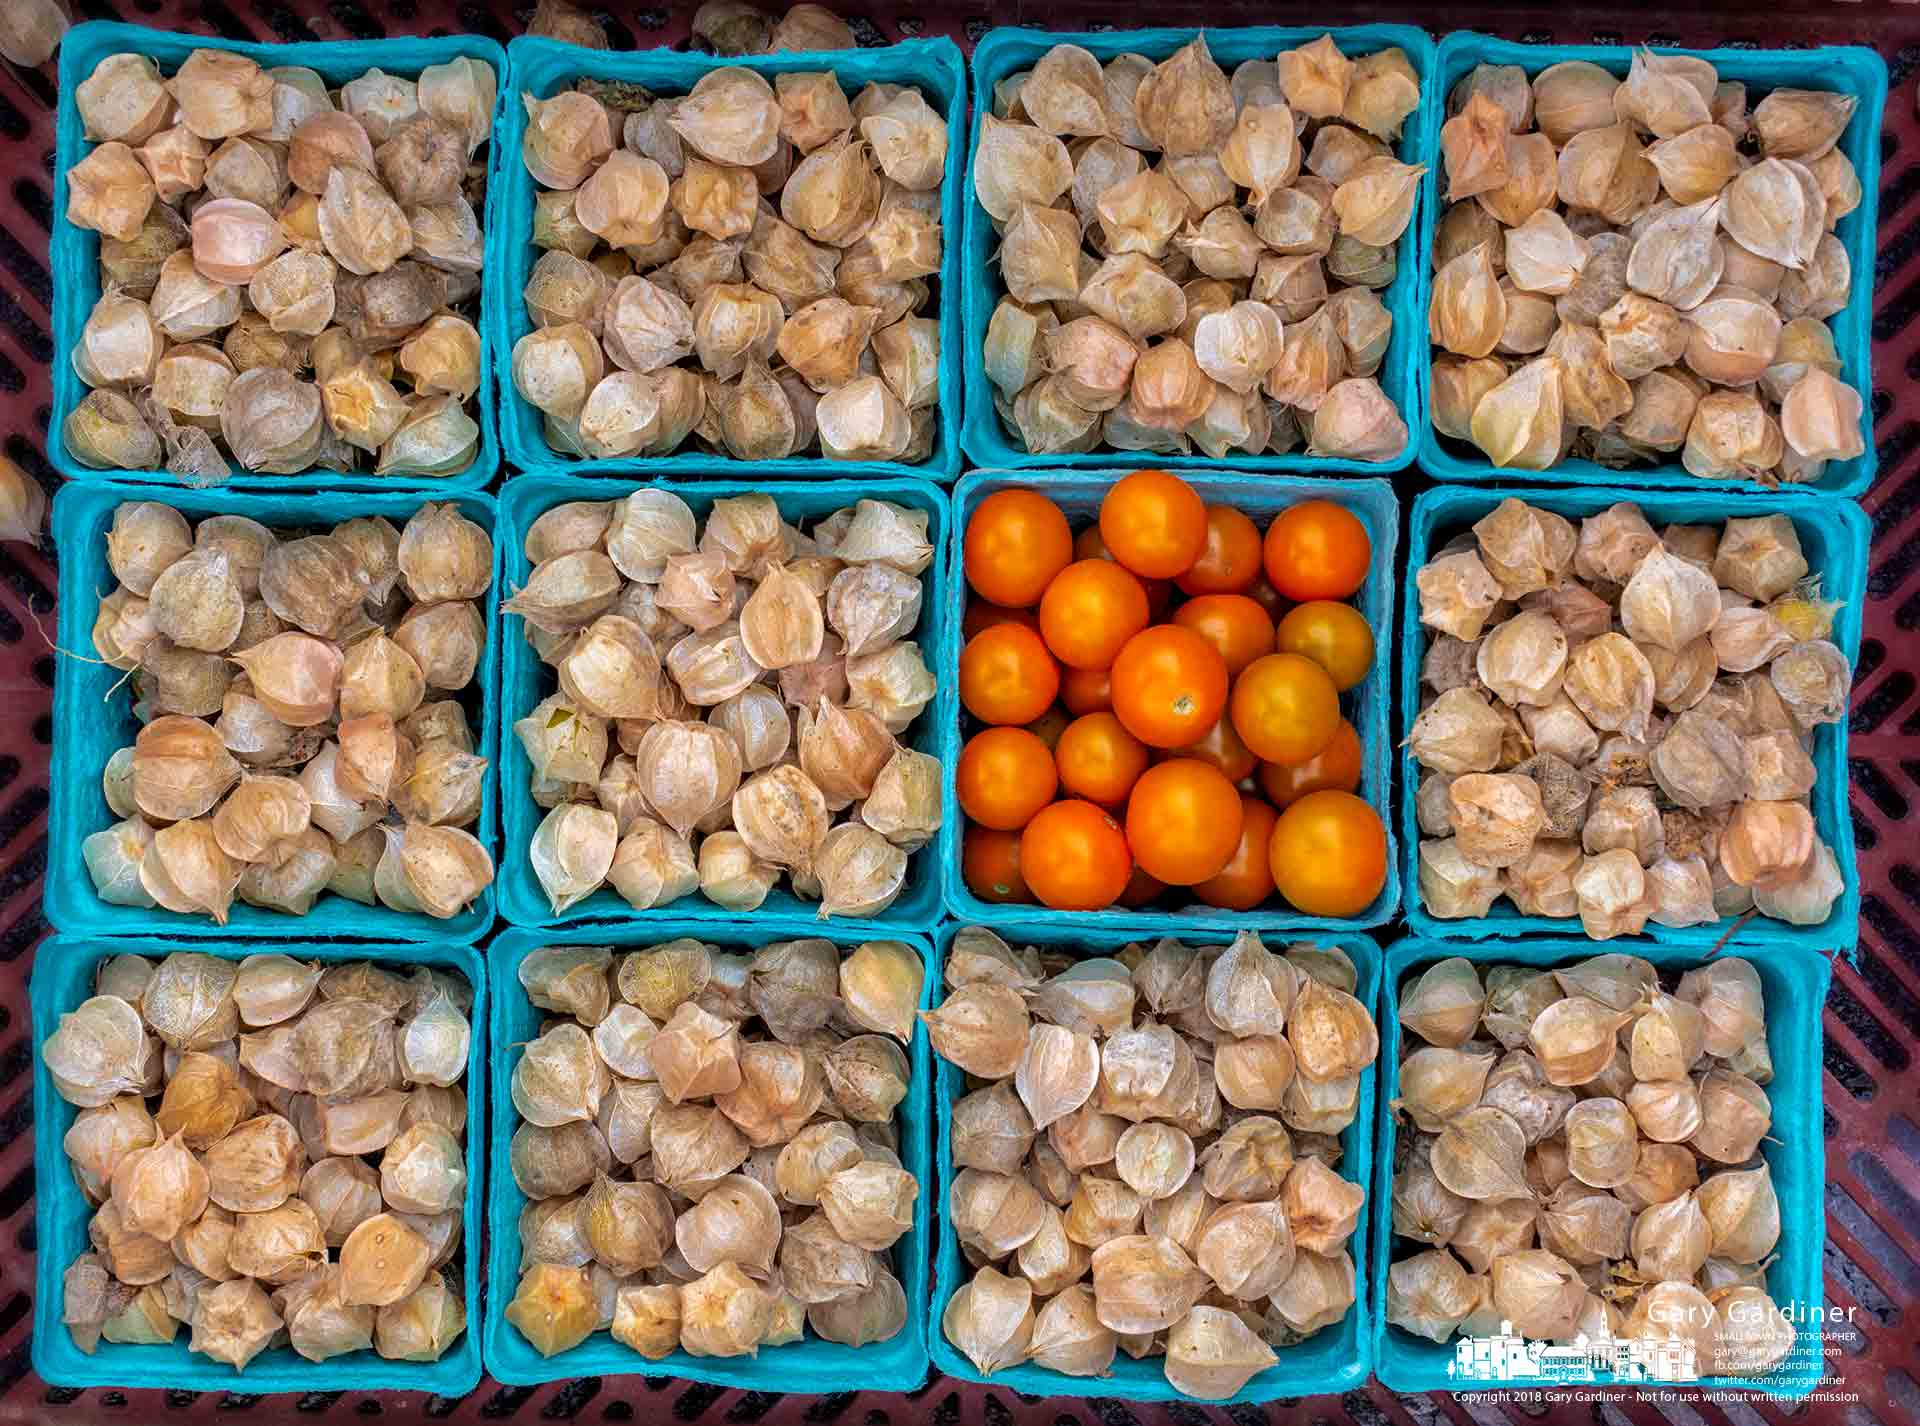 A basket of orange cherry tomatoes sits in a crate of ground cherries set aside for CSA customers at the Uptown Westerville Farmers Market. My Final Photo for Aug. 29, 2018.